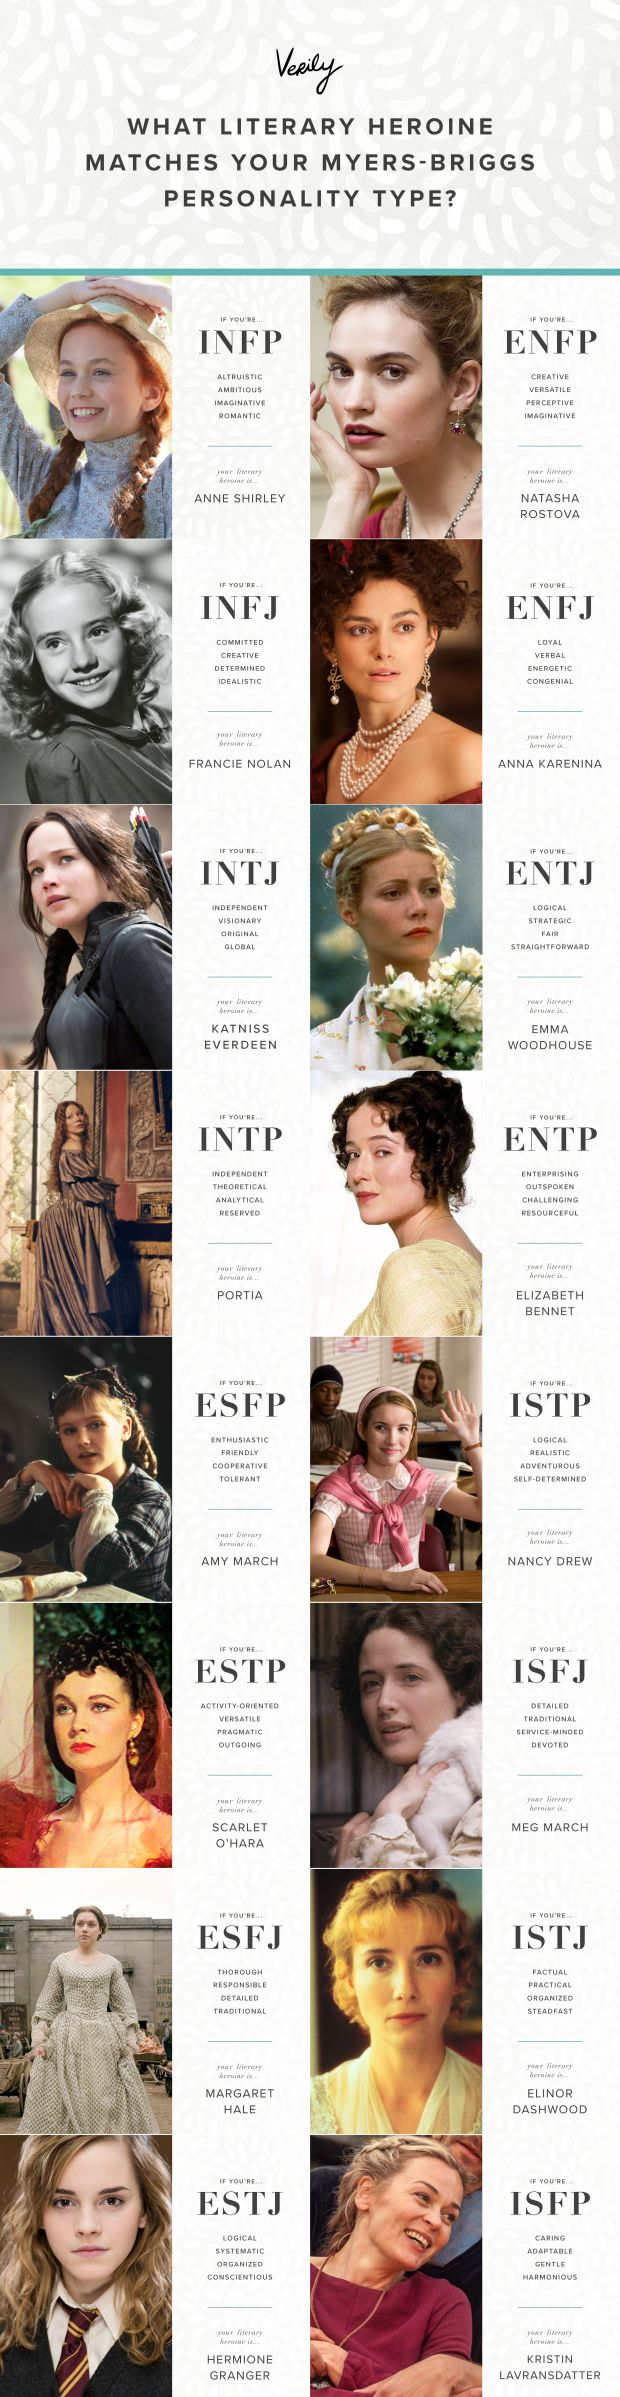 We have 16 literary heroines for every MBTI. - I'm INFJ - A Tree Grows in Brooklyn is a 1943 novel written by Betty Smith.